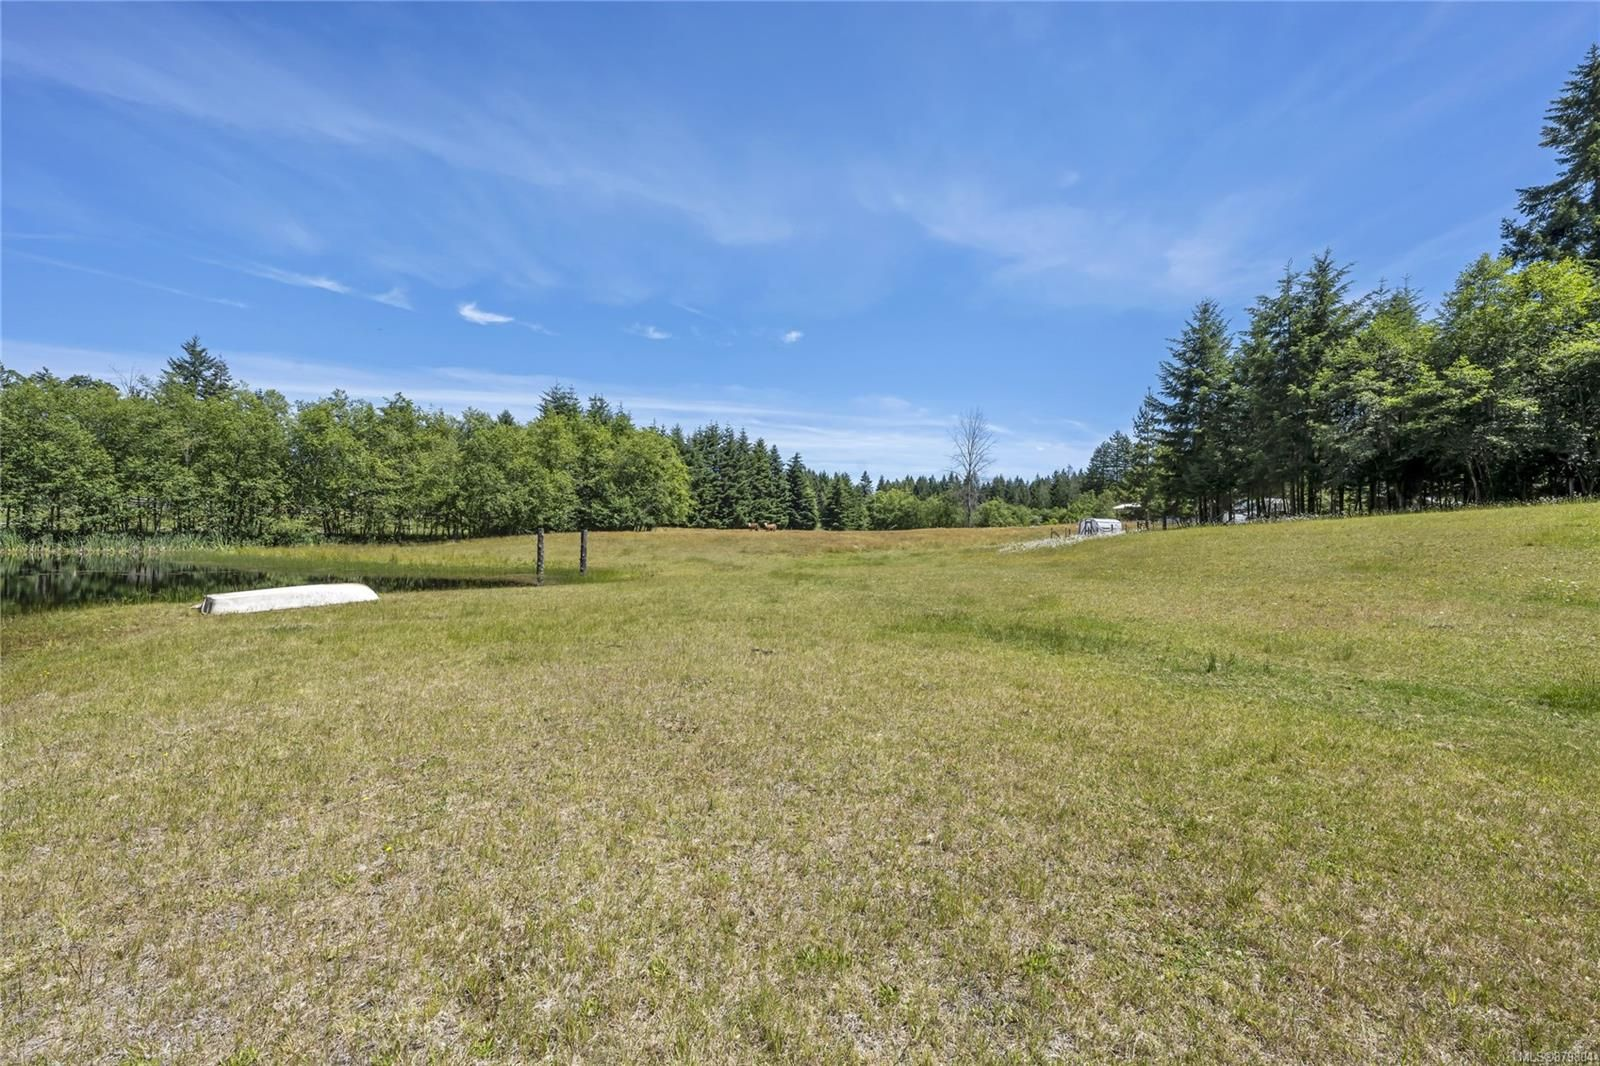 Photo 43: Photos: 3596 Riverside Rd in : ML Cobble Hill Manufactured Home for sale (Malahat & Area)  : MLS®# 879804